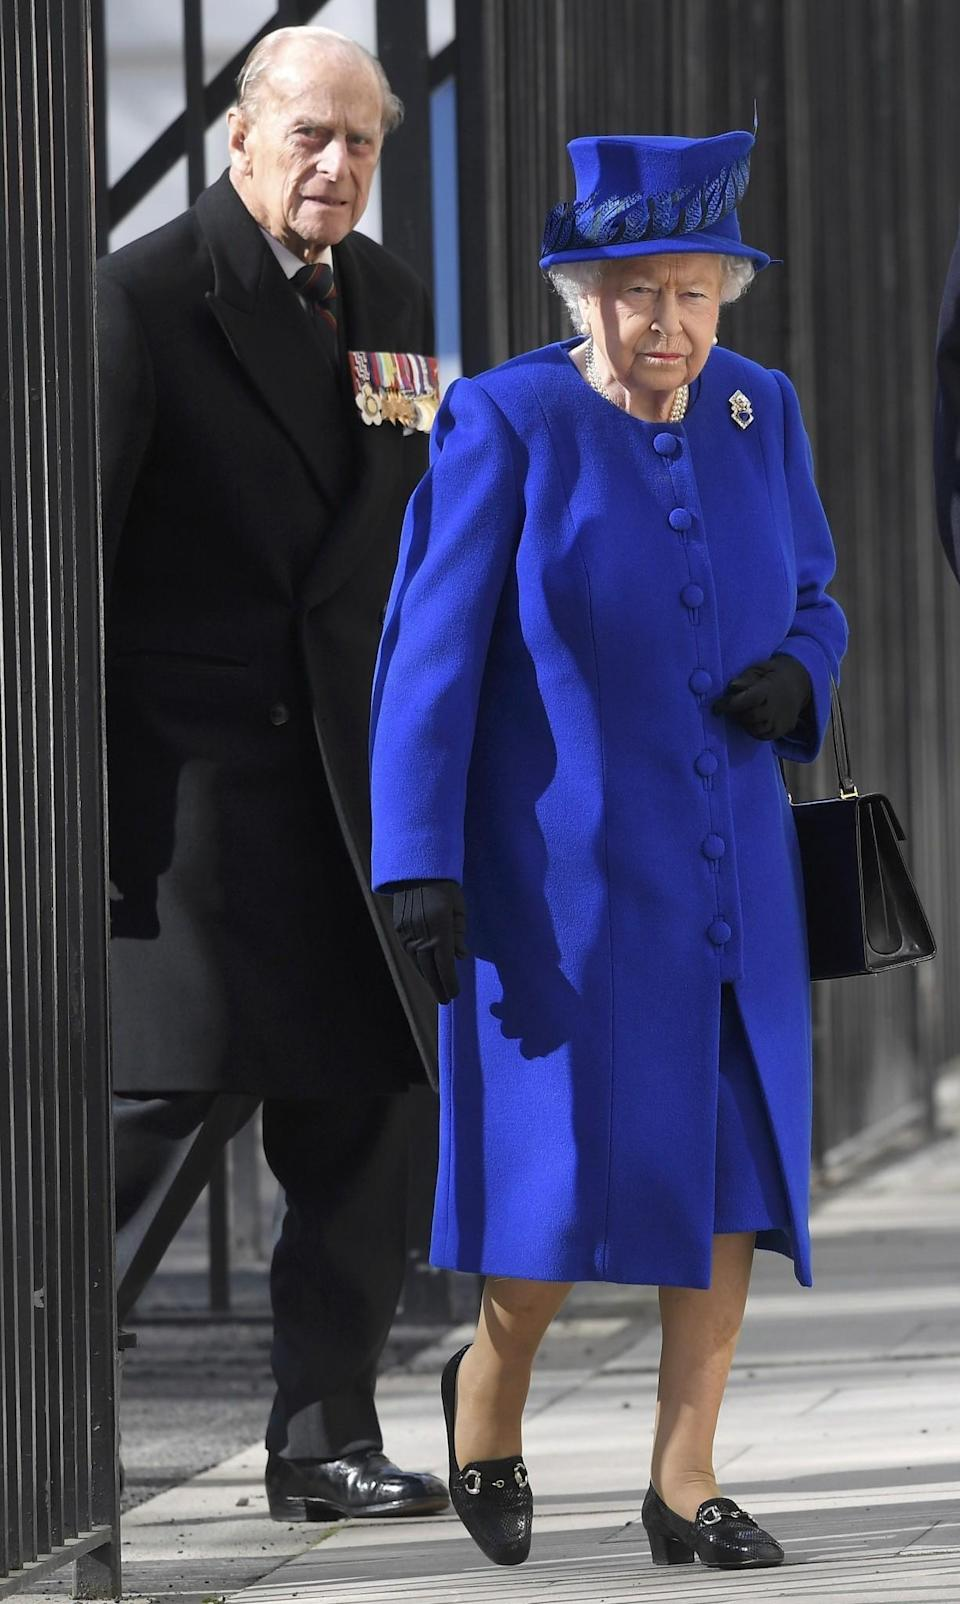 <p>The Queen attended the unveiling of a new Iraq and Afghanistan memorial wearing a royal blue look.<br><i>[Photo: PA]</i> </p>